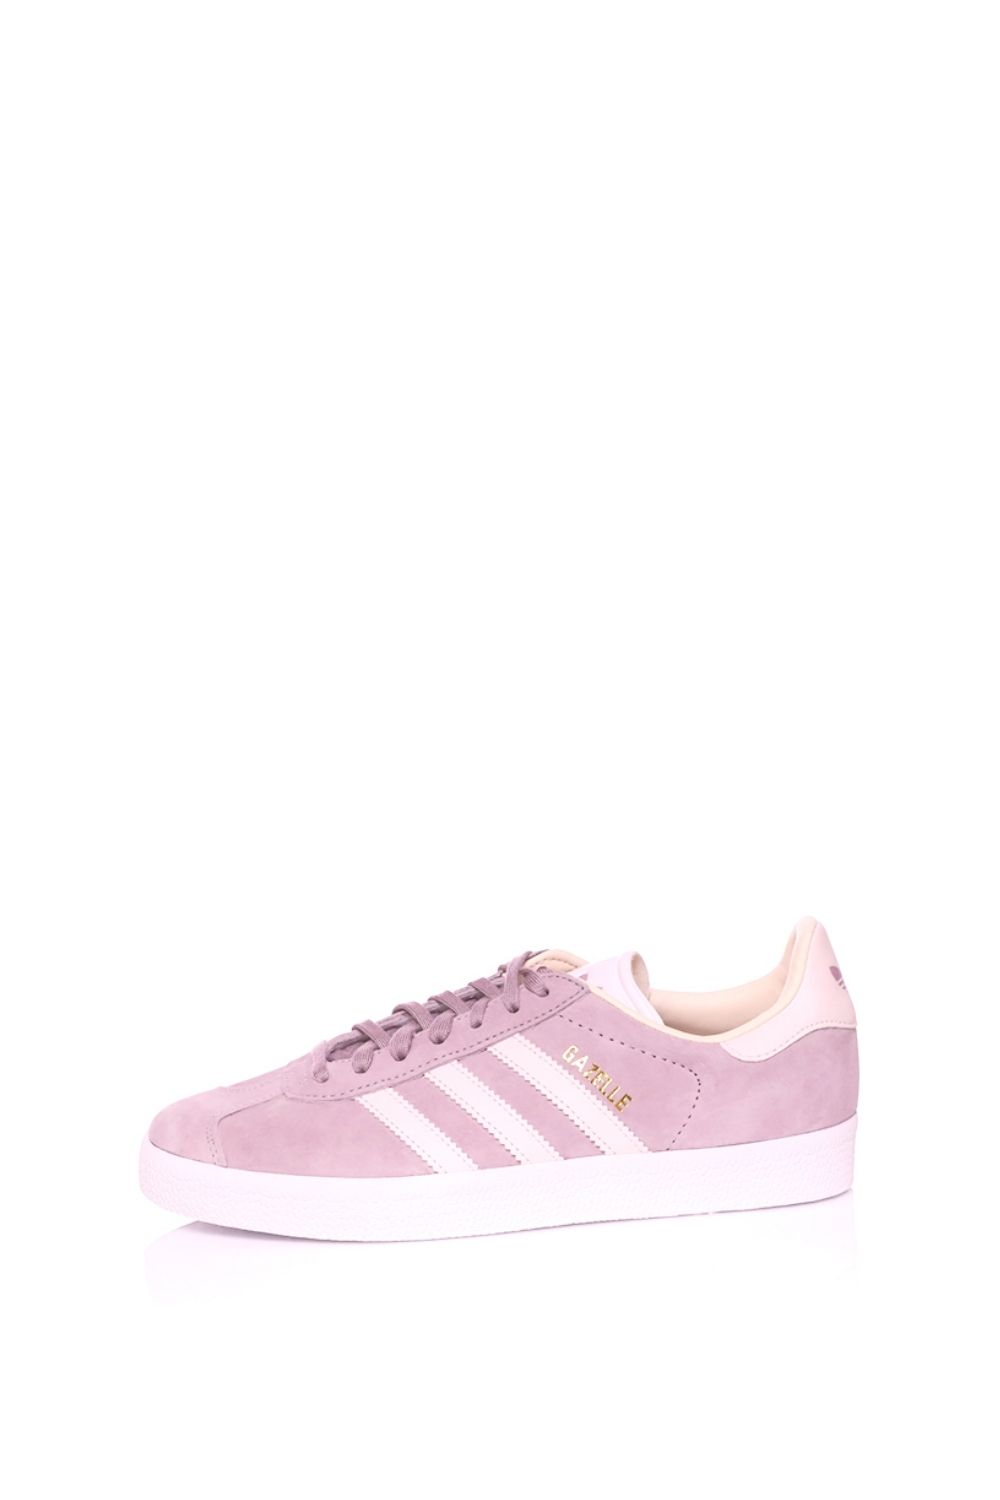 adidas Originals – Γυναικεία sneakers adidas Originals GAZELLE μοβ